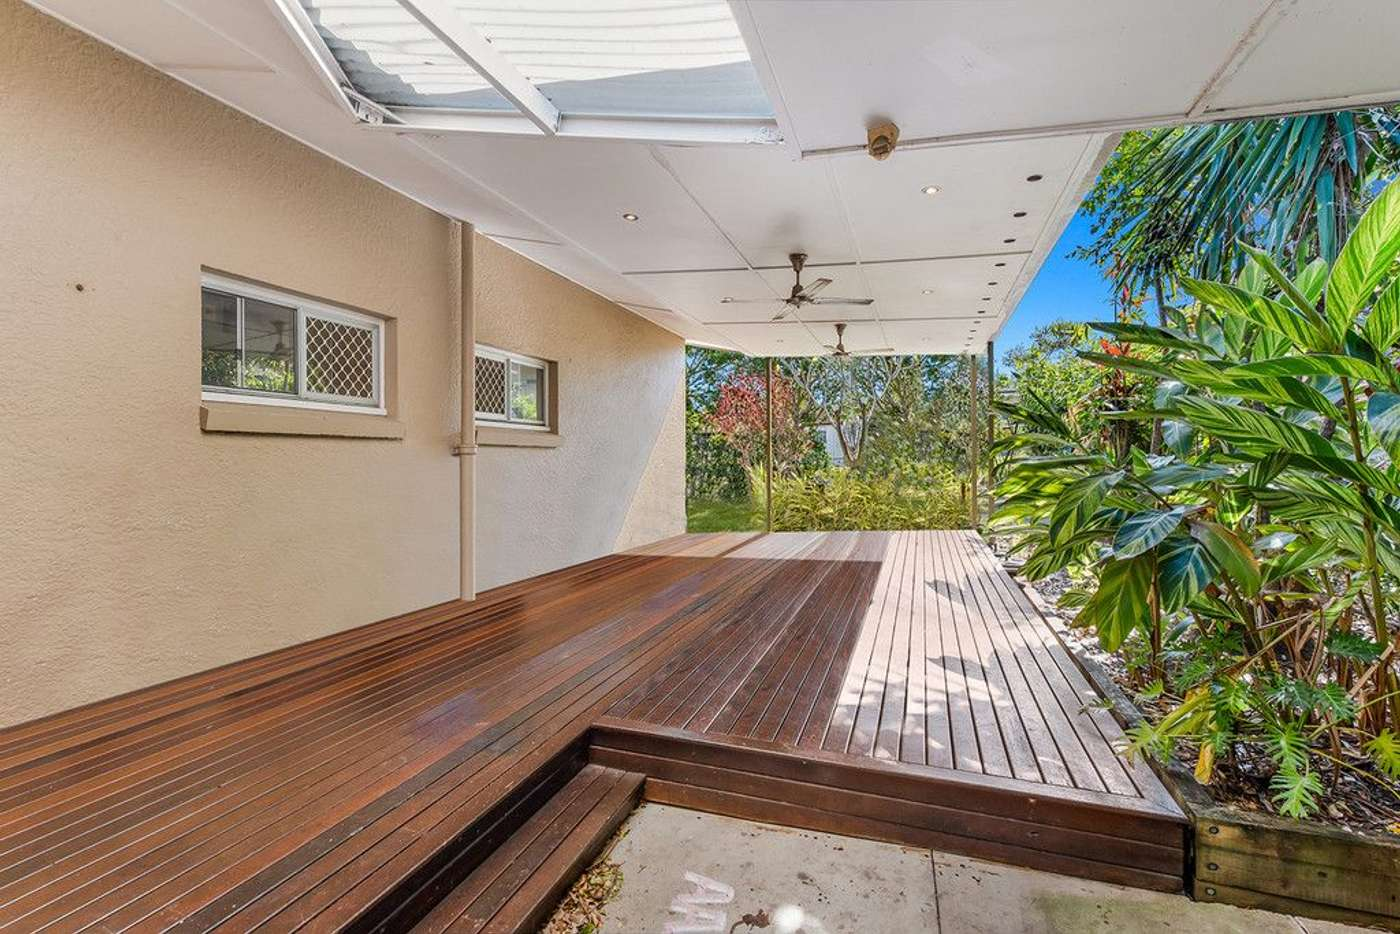 Sixth view of Homely house listing, 79 Abbeville Street, Upper Mount Gravatt QLD 4122